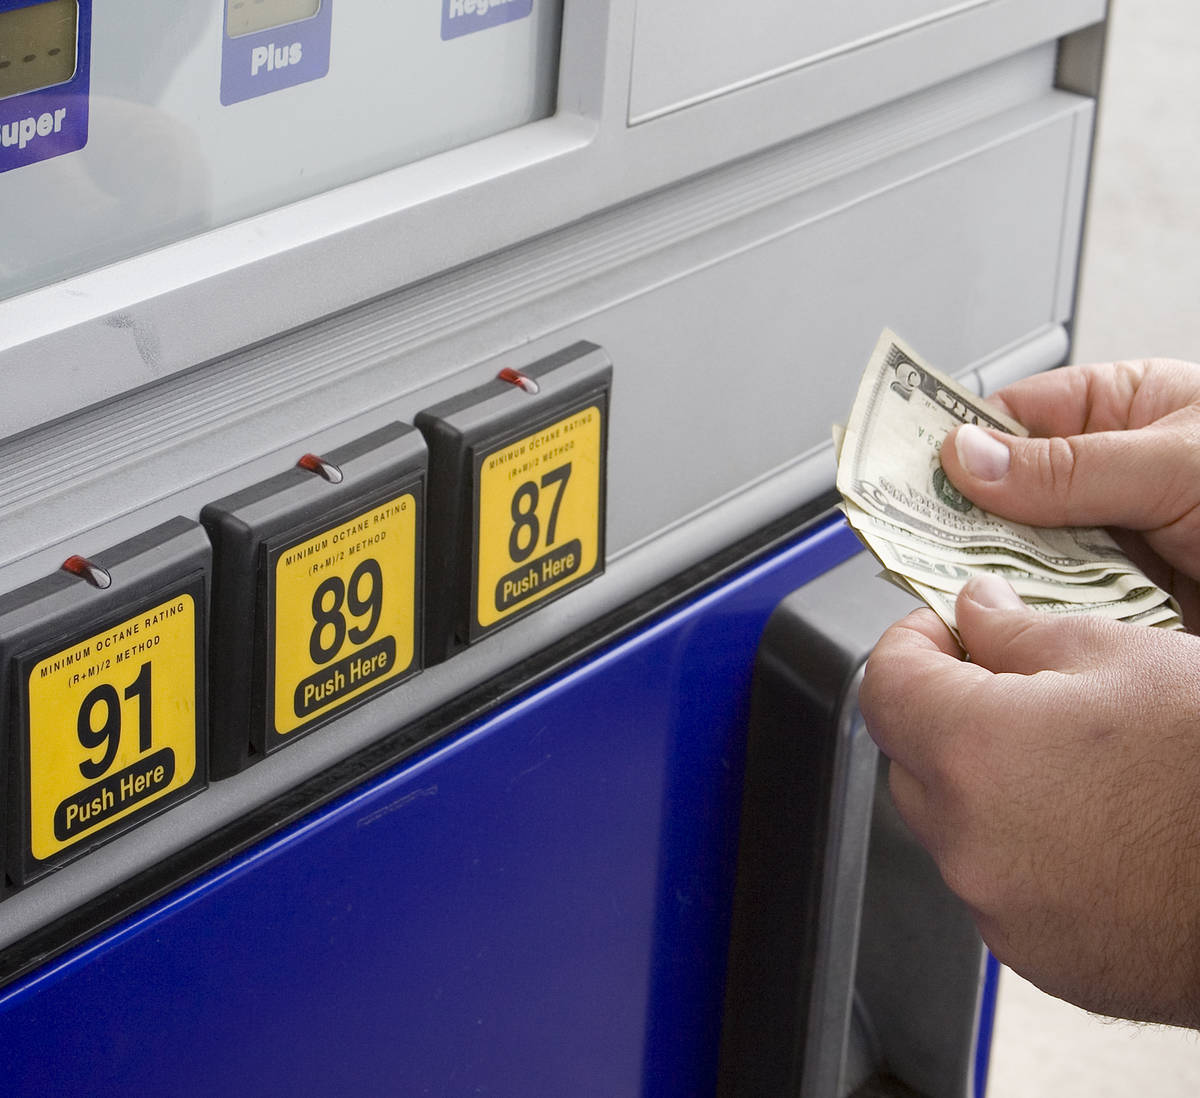 Getty Images Nevada experienced the fourth largest weekly decrease in the price of gasoline th ...